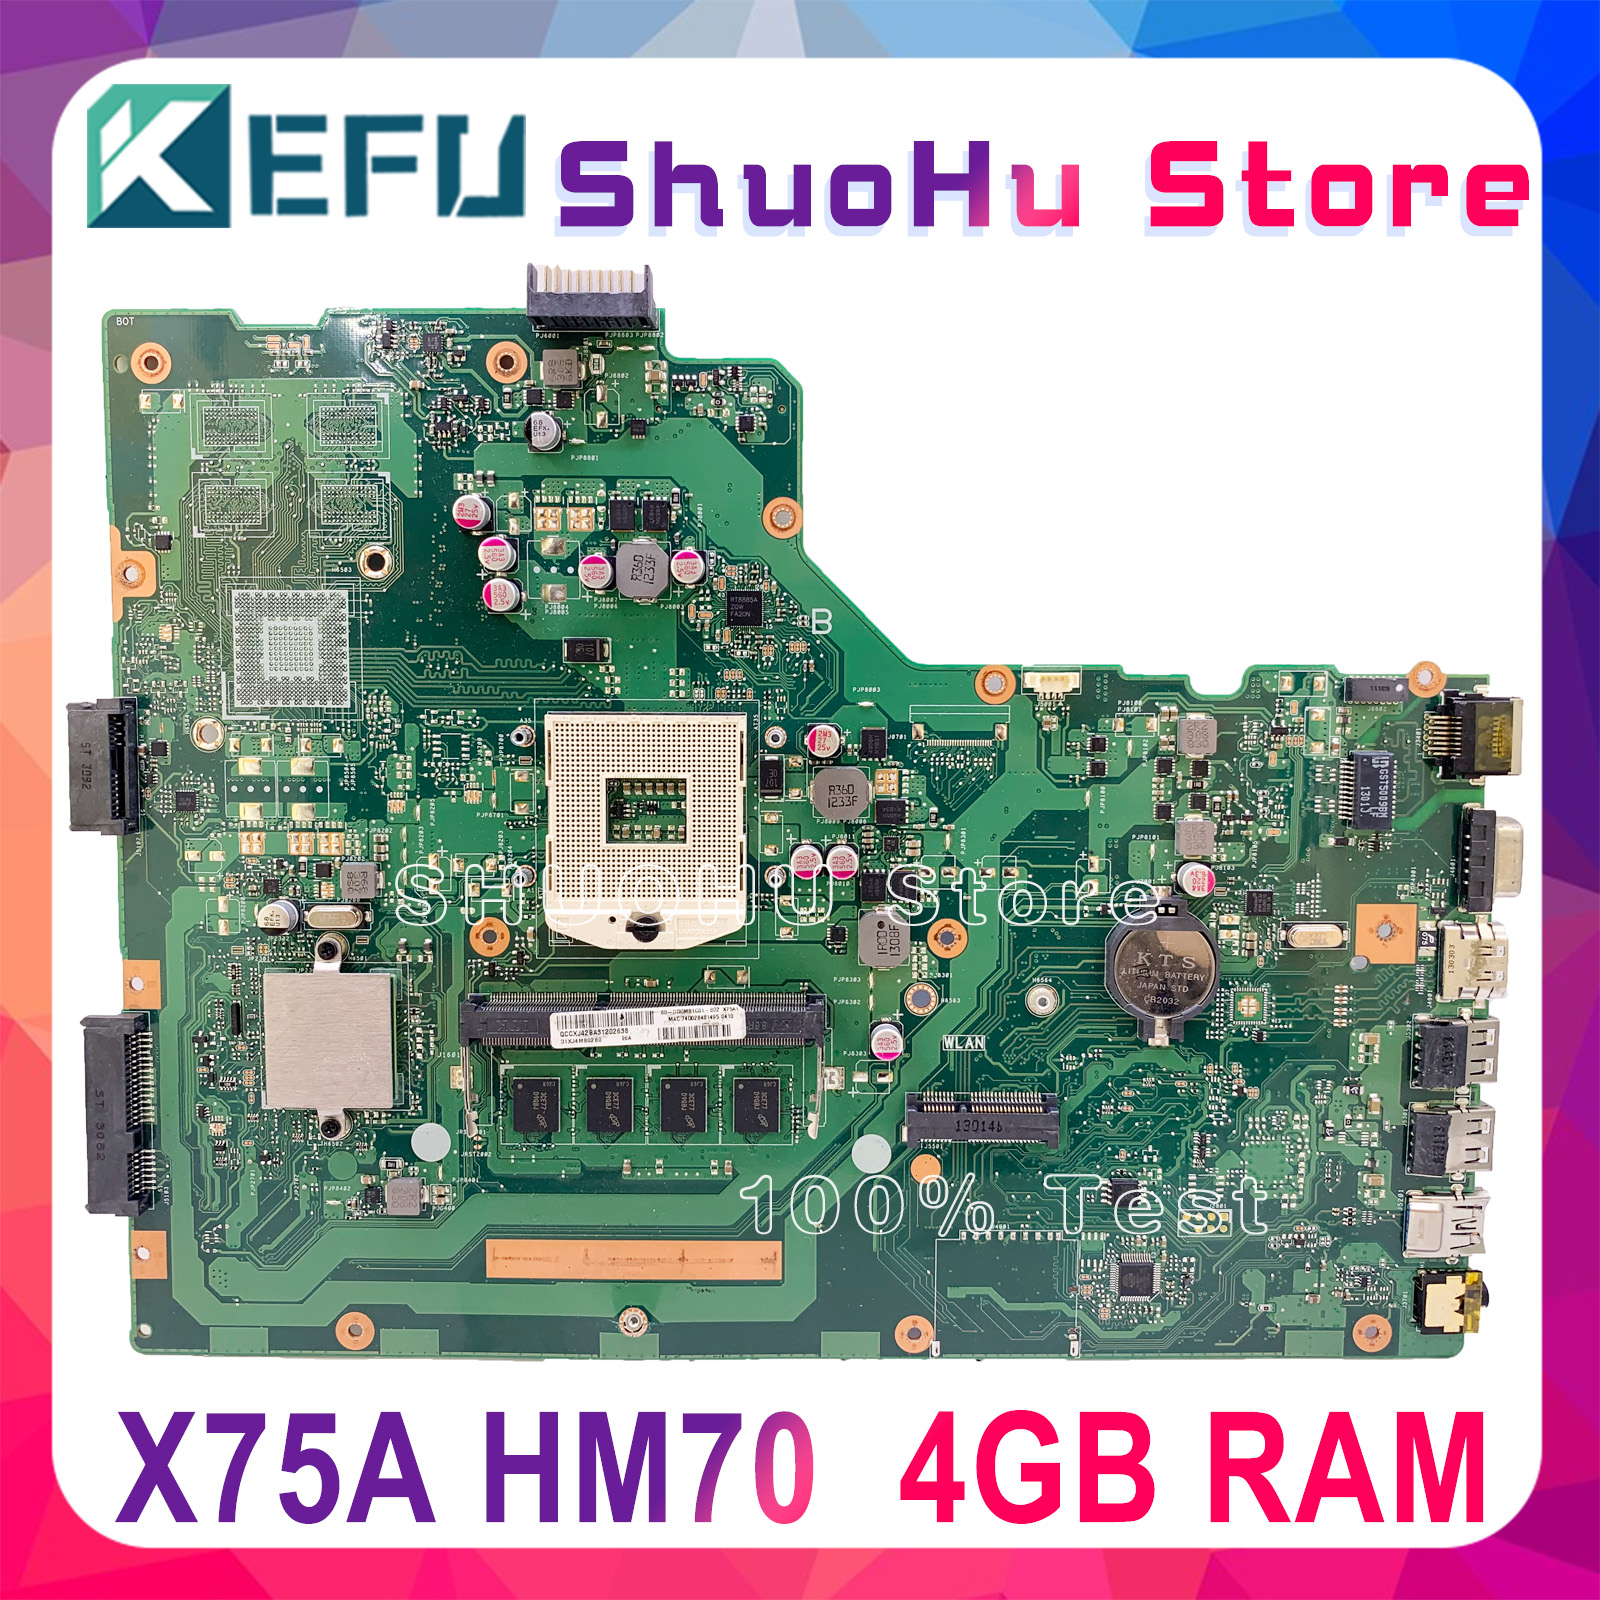 KEFU X75A Motherboard For ASUS X75VB  X75A X75VD X75V X75VC Laptop Motherboard HM70 4GB Memory Tested 100% Work Original